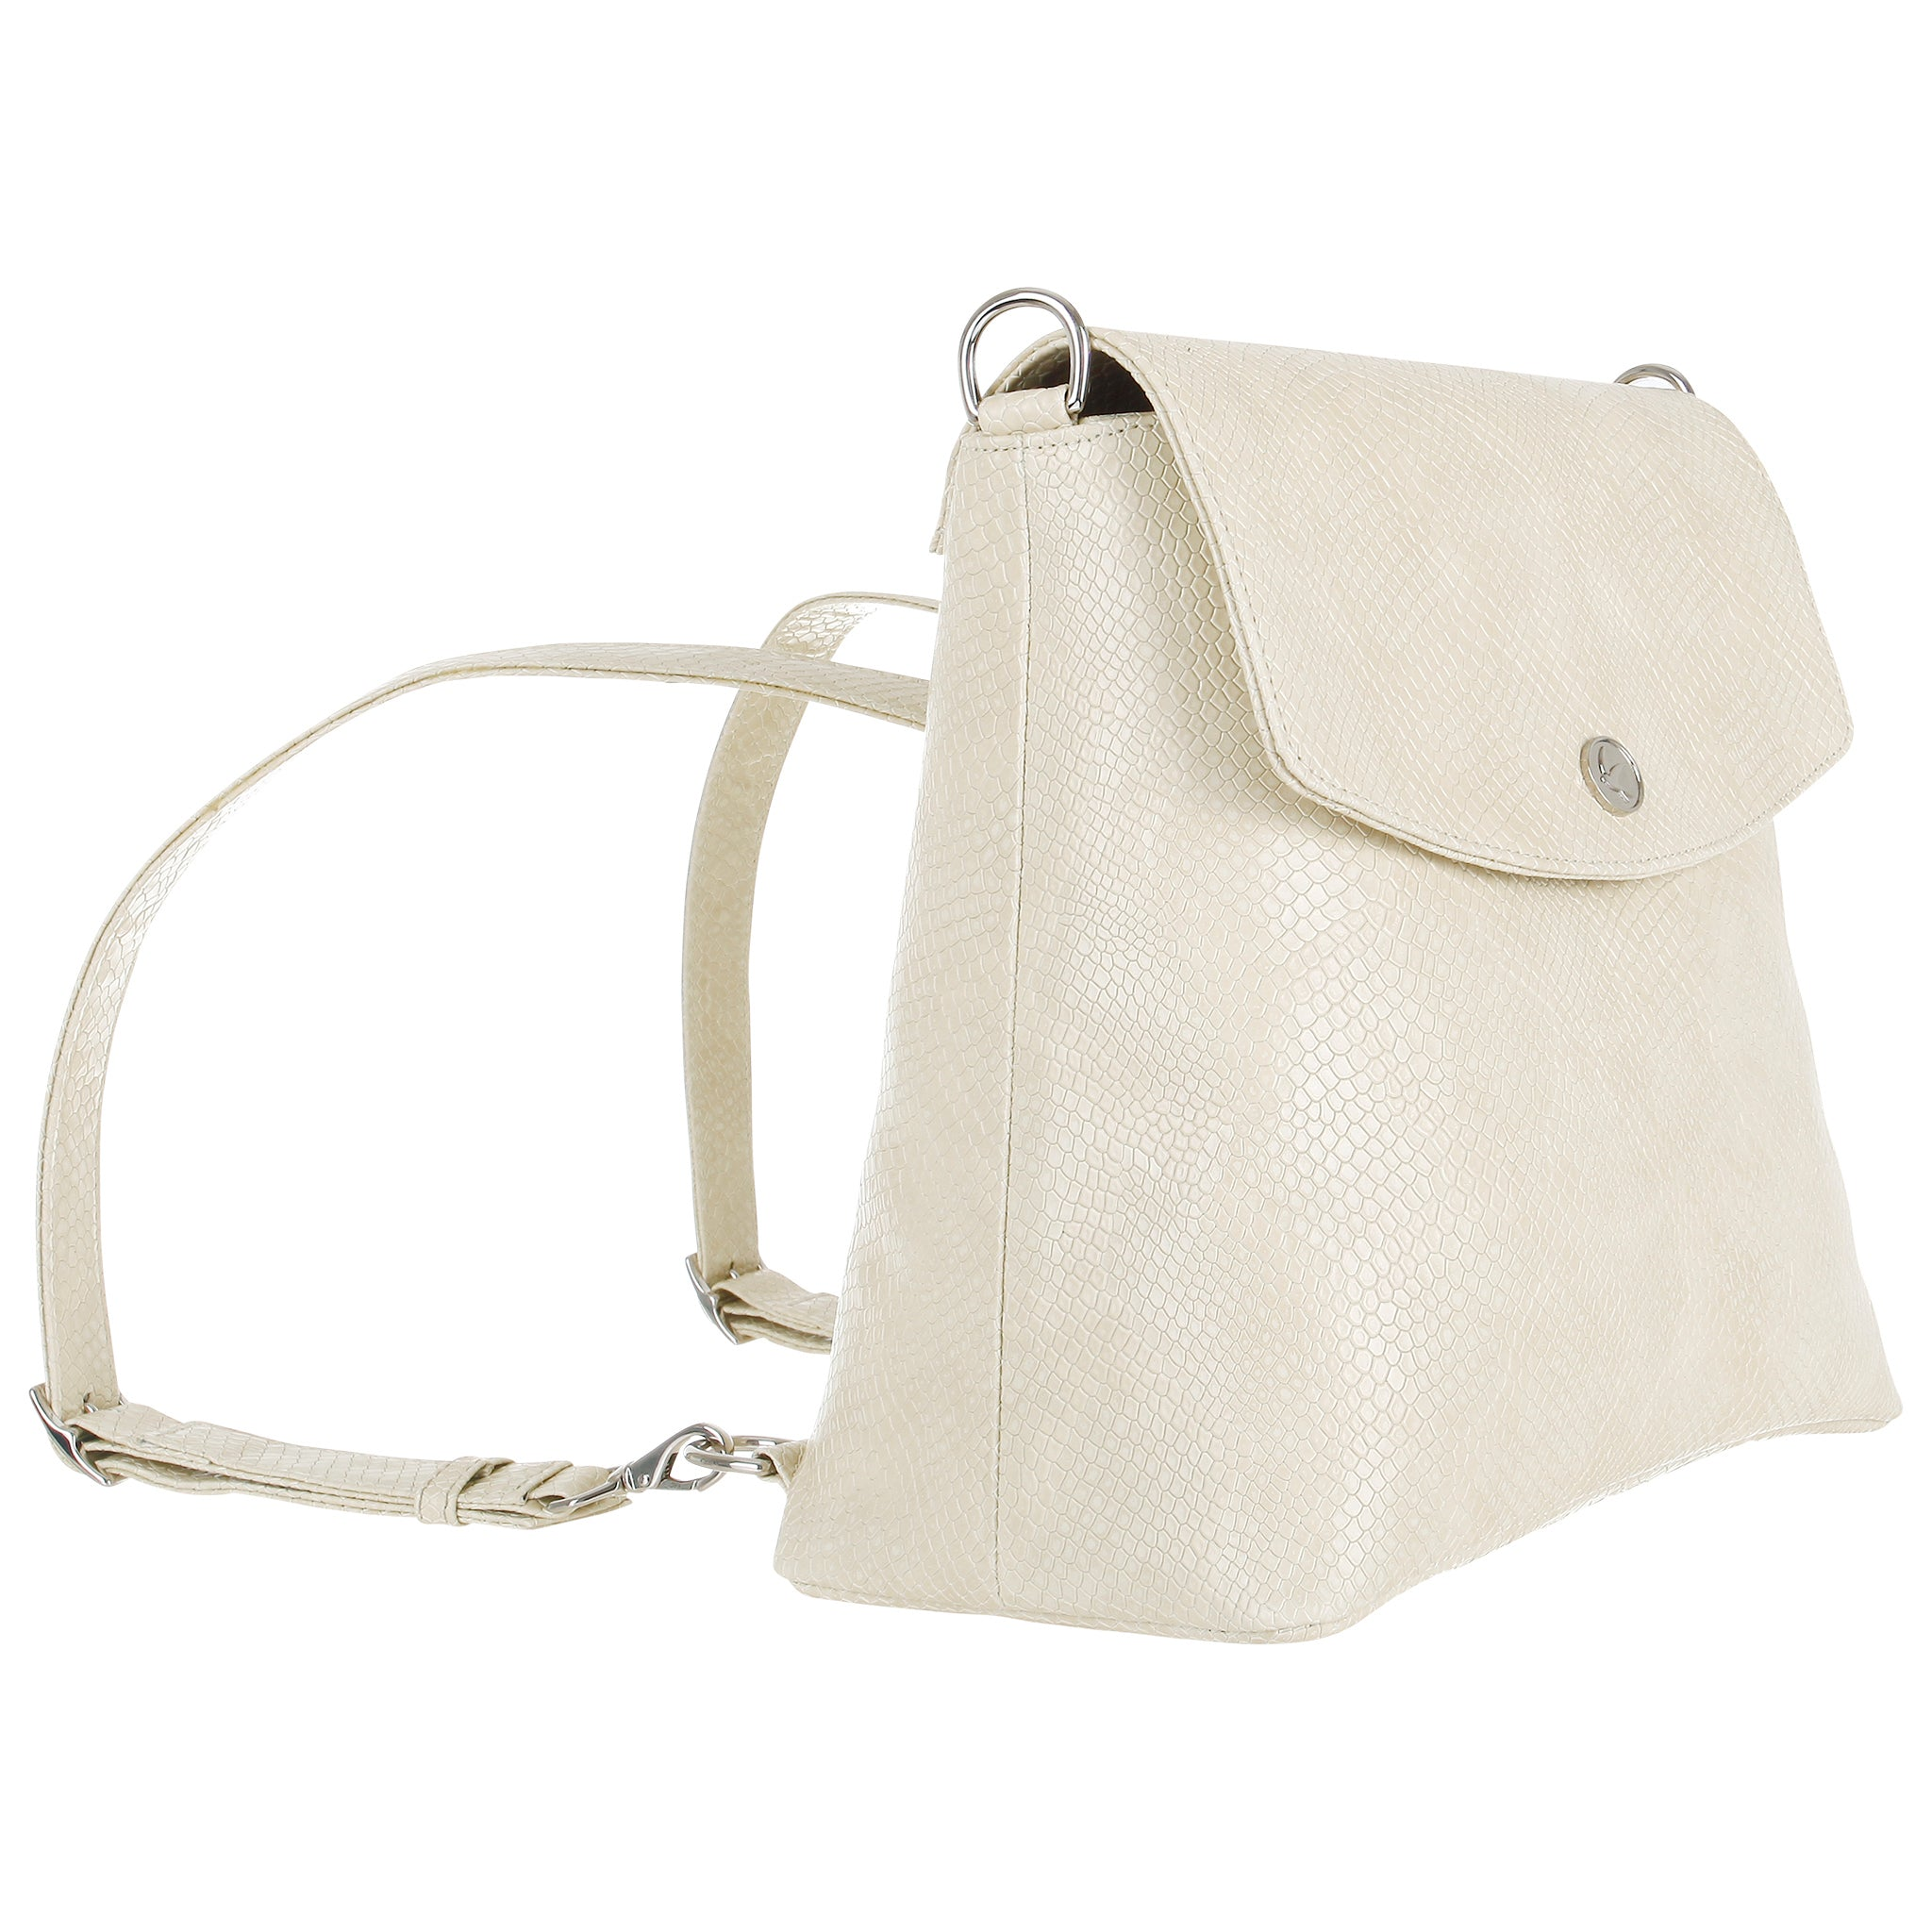 Svala vegan cream Gemma backpack purse